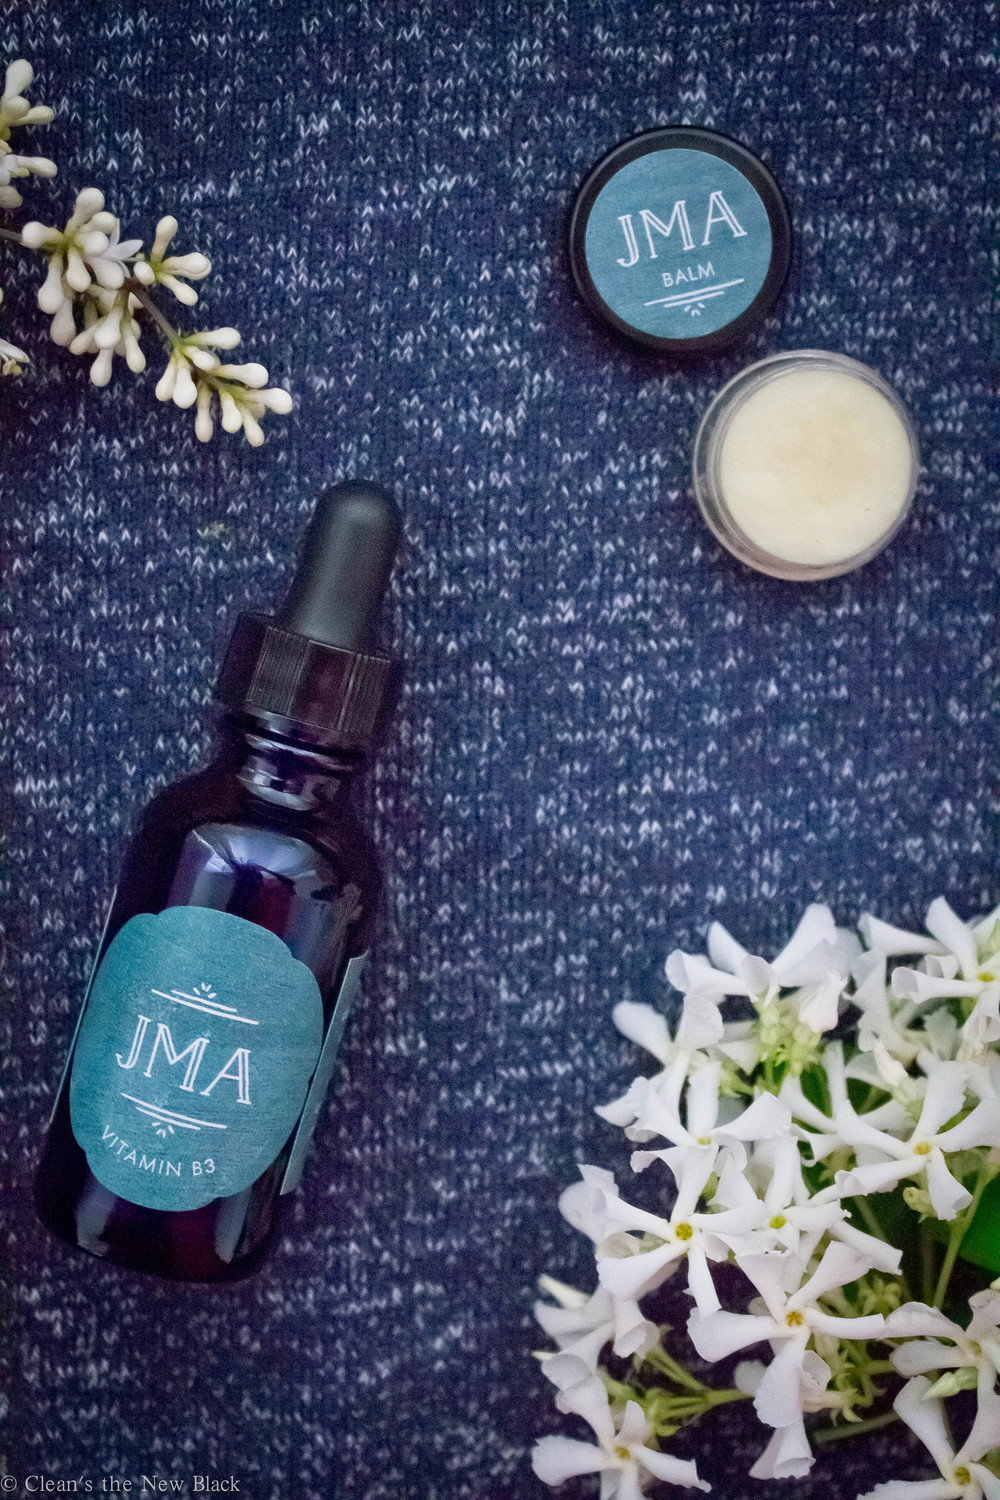 JMA Review. Reduce fine lines, wrinkles, dark spots, and acne with their B3 serum. And get supple hydrated lips with their signature lip balm.